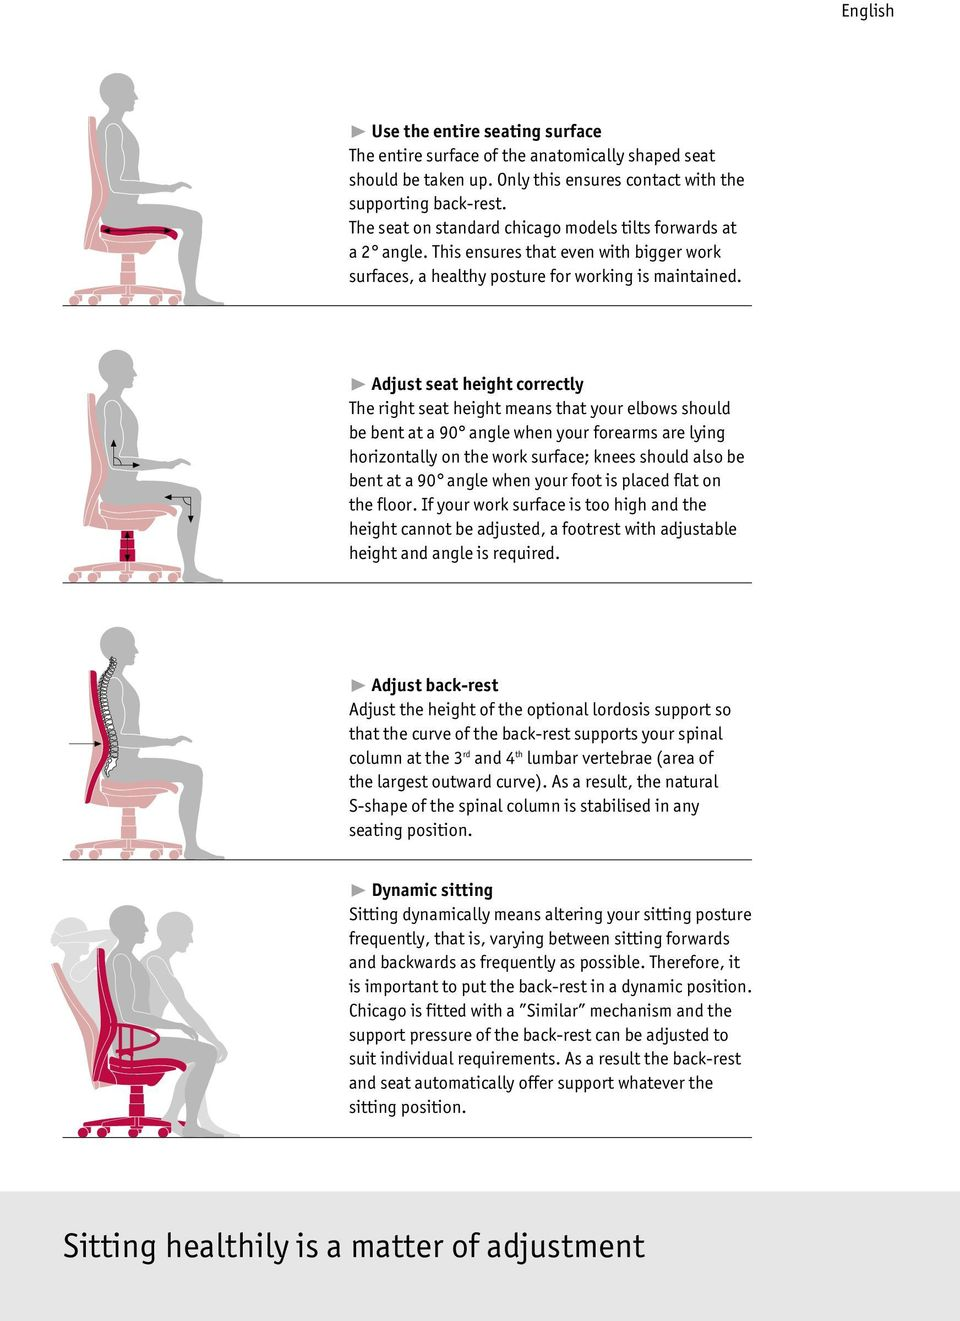 ❿ Adjust seat height correctly The right seat height means that your elbows should be bent at a 90 angle when your forearms are lying horizontally on the work surface; knees should also be bent at a